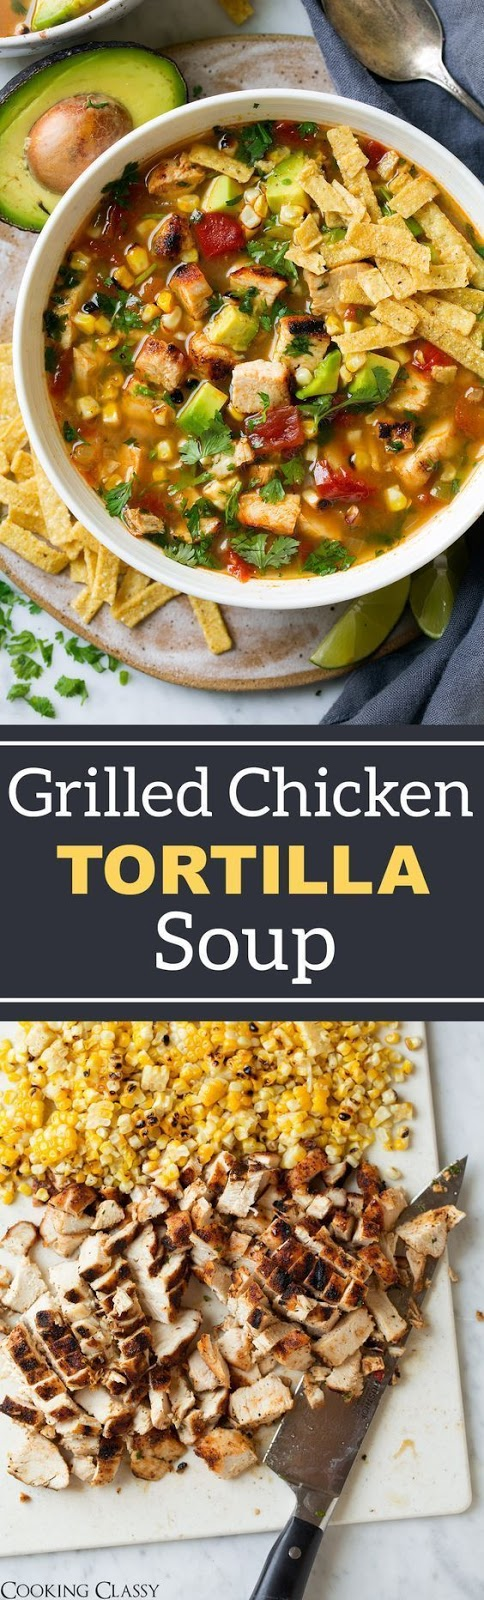 Grilled Chicken Tortilla Soup Recipe